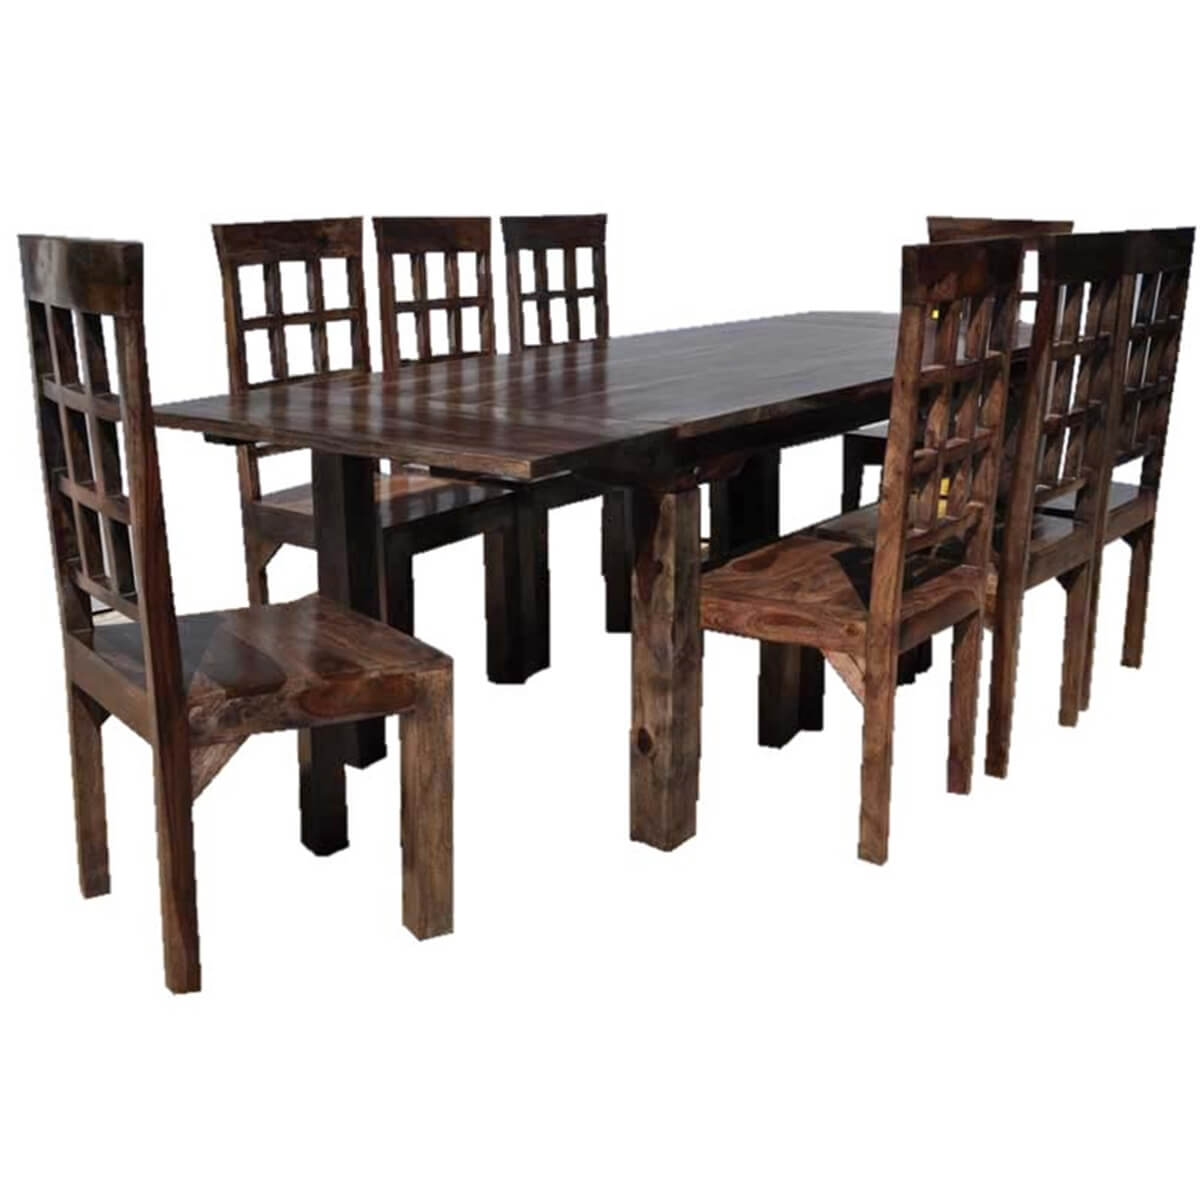 Portland rustic furniture dining room table chair set w for Dining room tables portland or